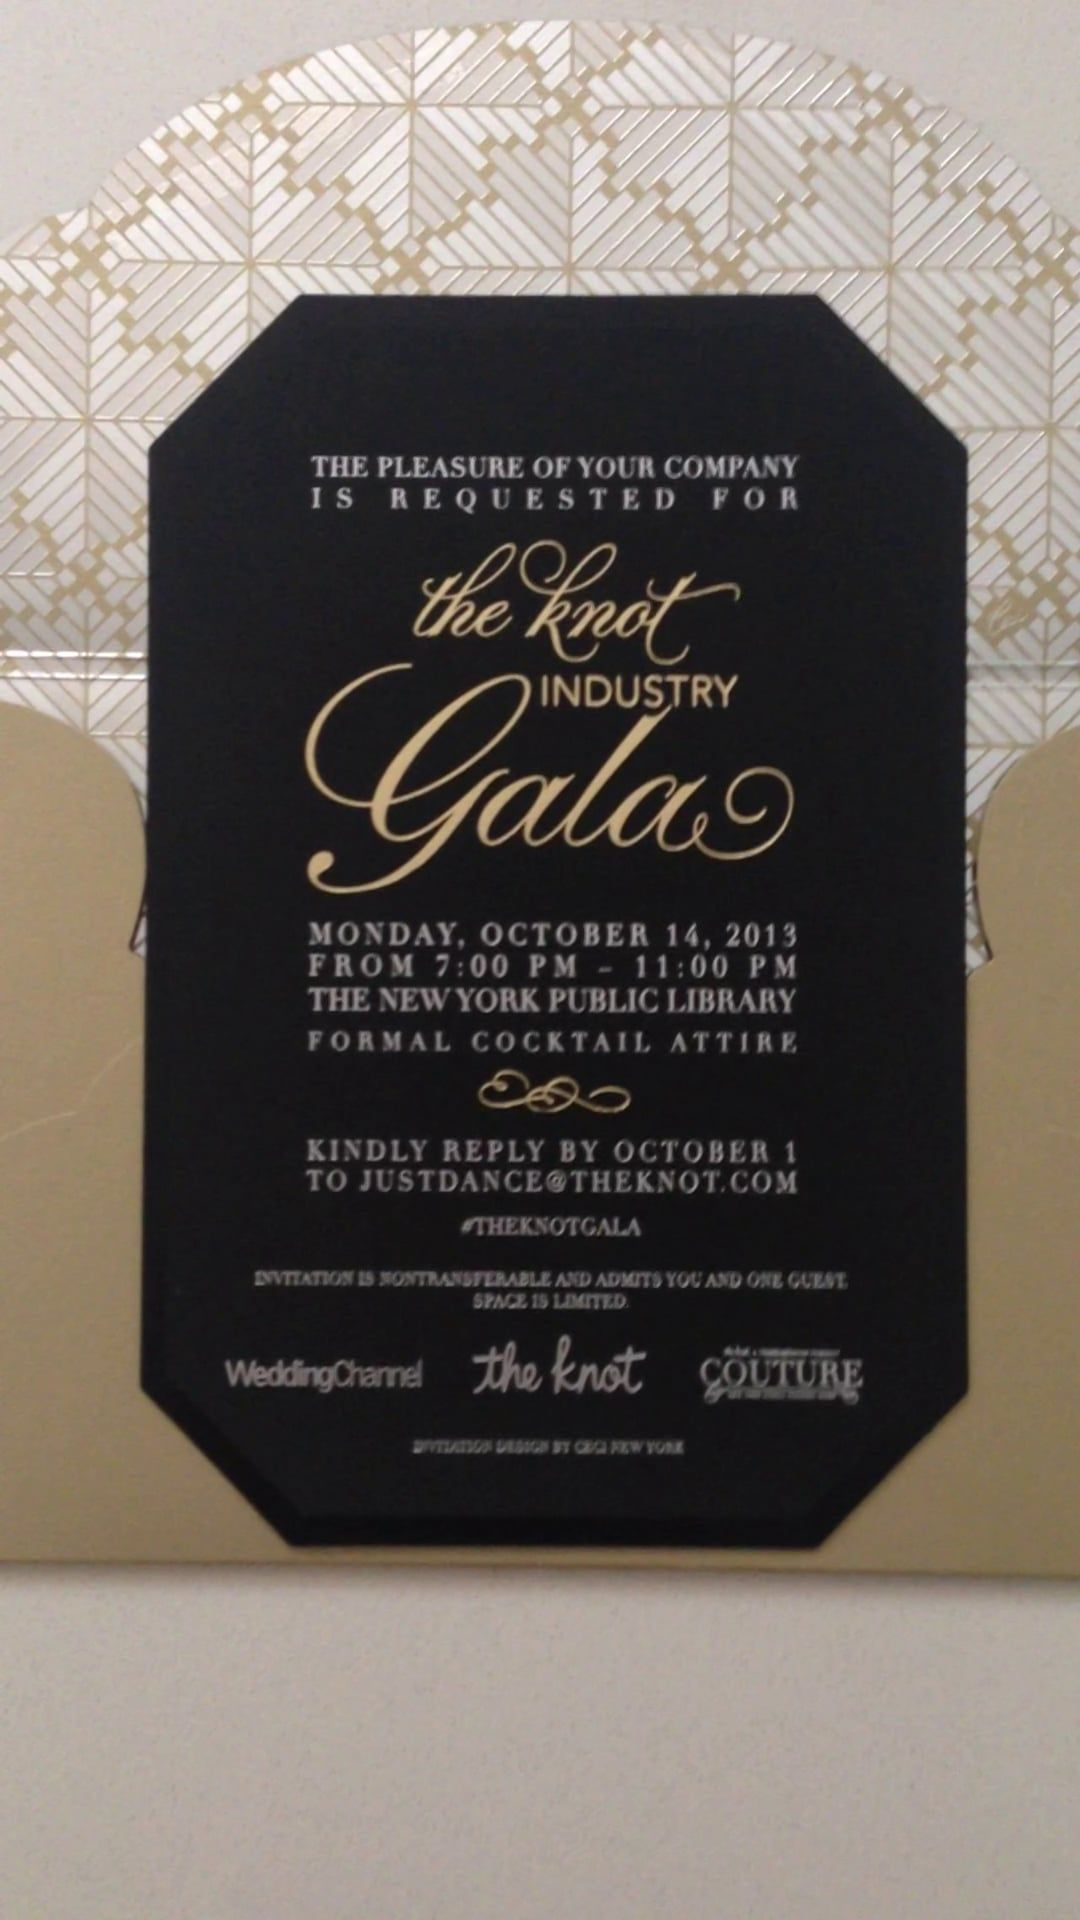 Ceci new york invitation reveal the knot industry gala invitations ceci new york invitation reveal the knot industry gala invitations by ceci new york stopboris